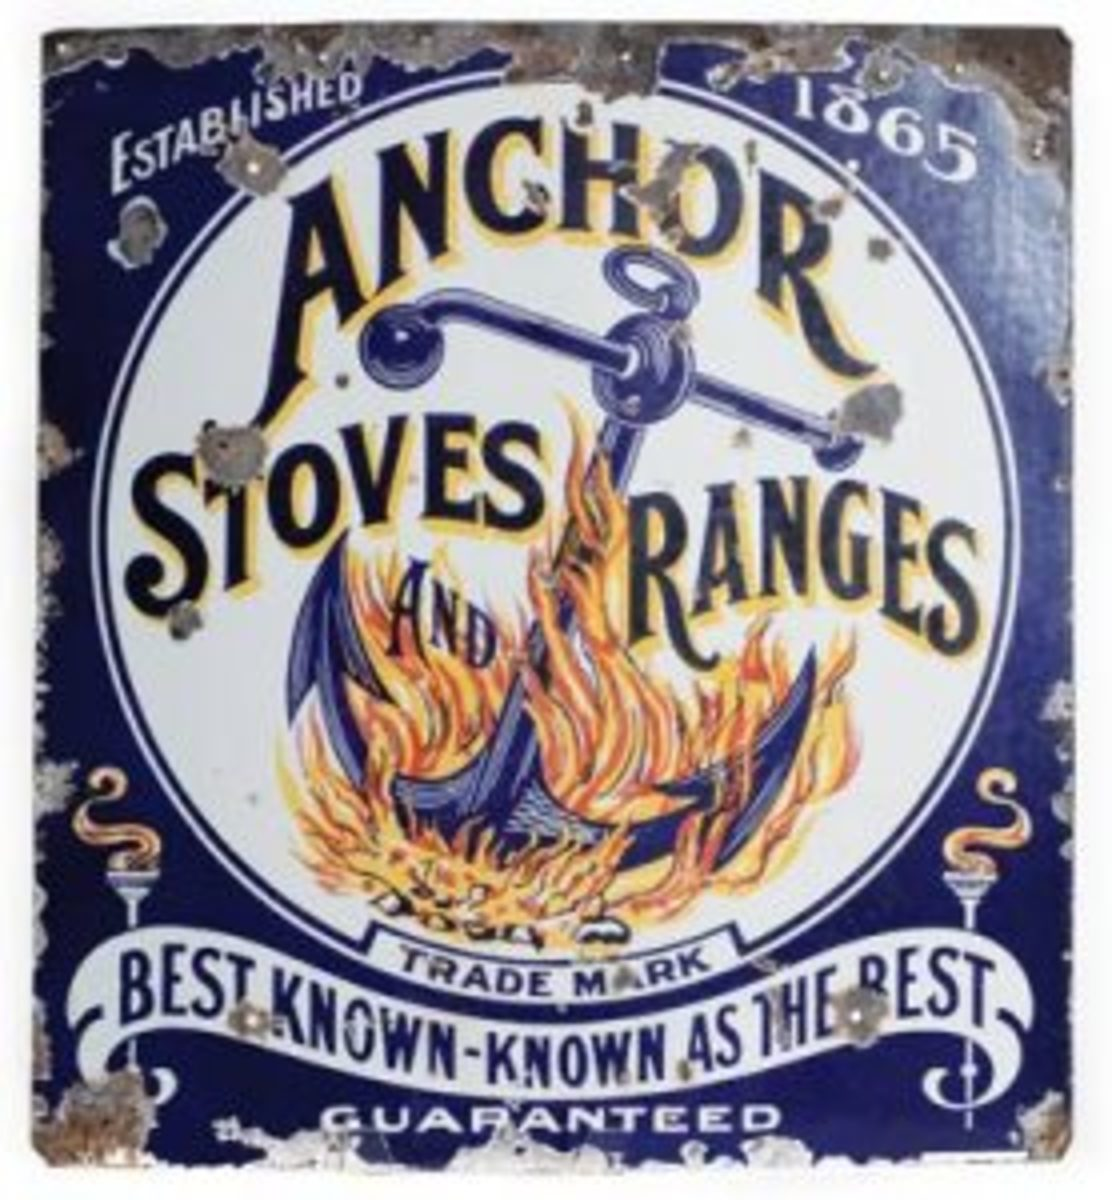 Anchor Stoves and Ranges sign